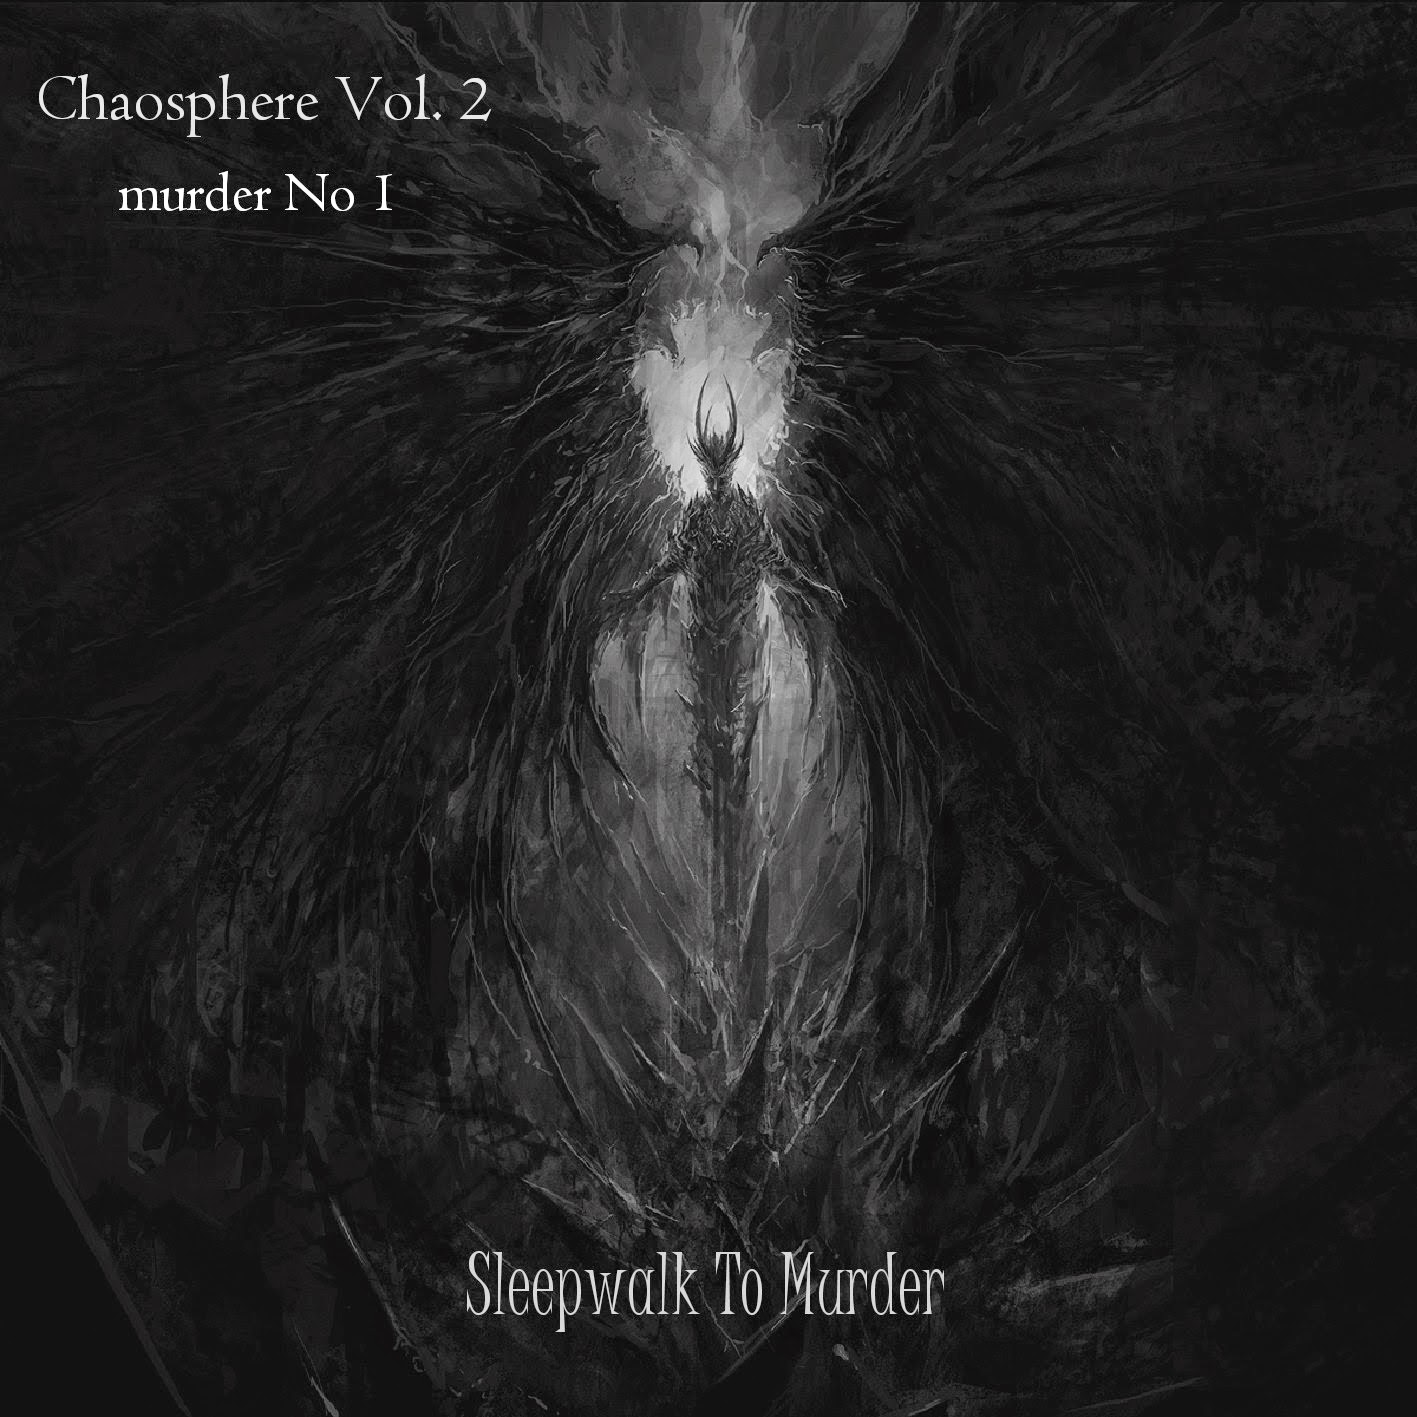 Dichotomy Engine on Chaosphere Vol. 2 - Sleepwalk To Murder